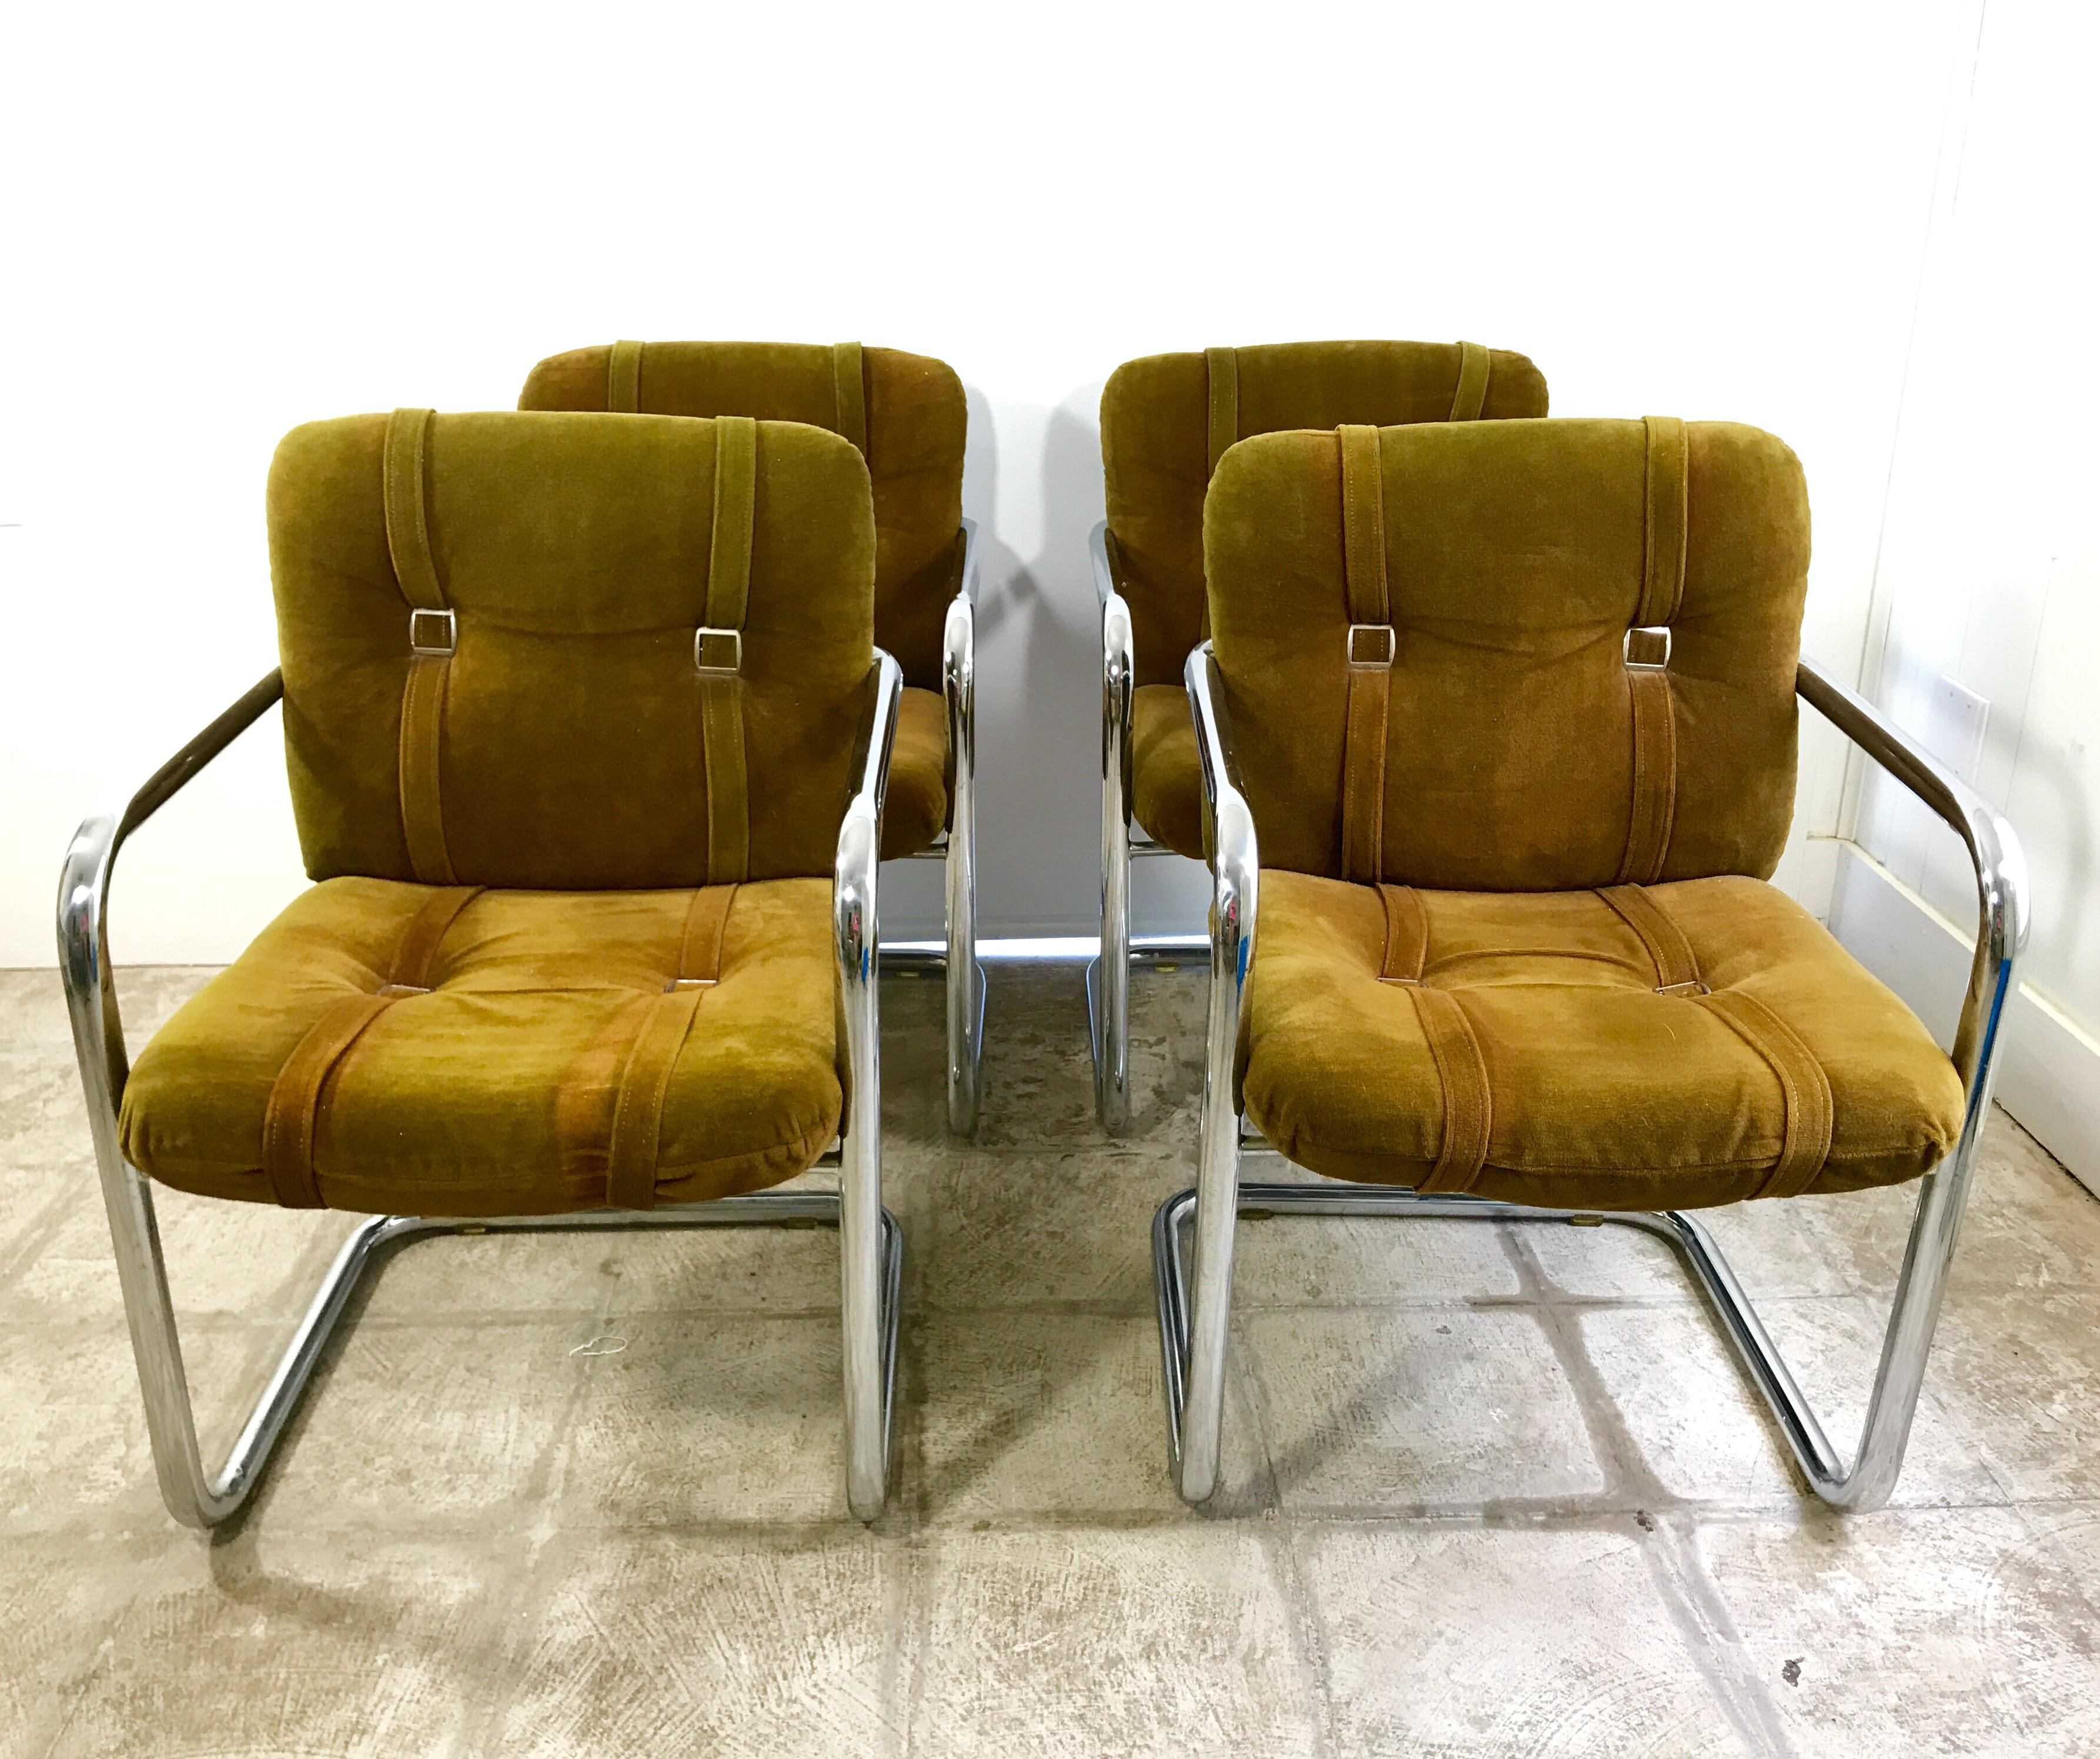 Vintage Chromcraft Cantilever Dining Chairs   Set Of 4   Image 2 Of 6